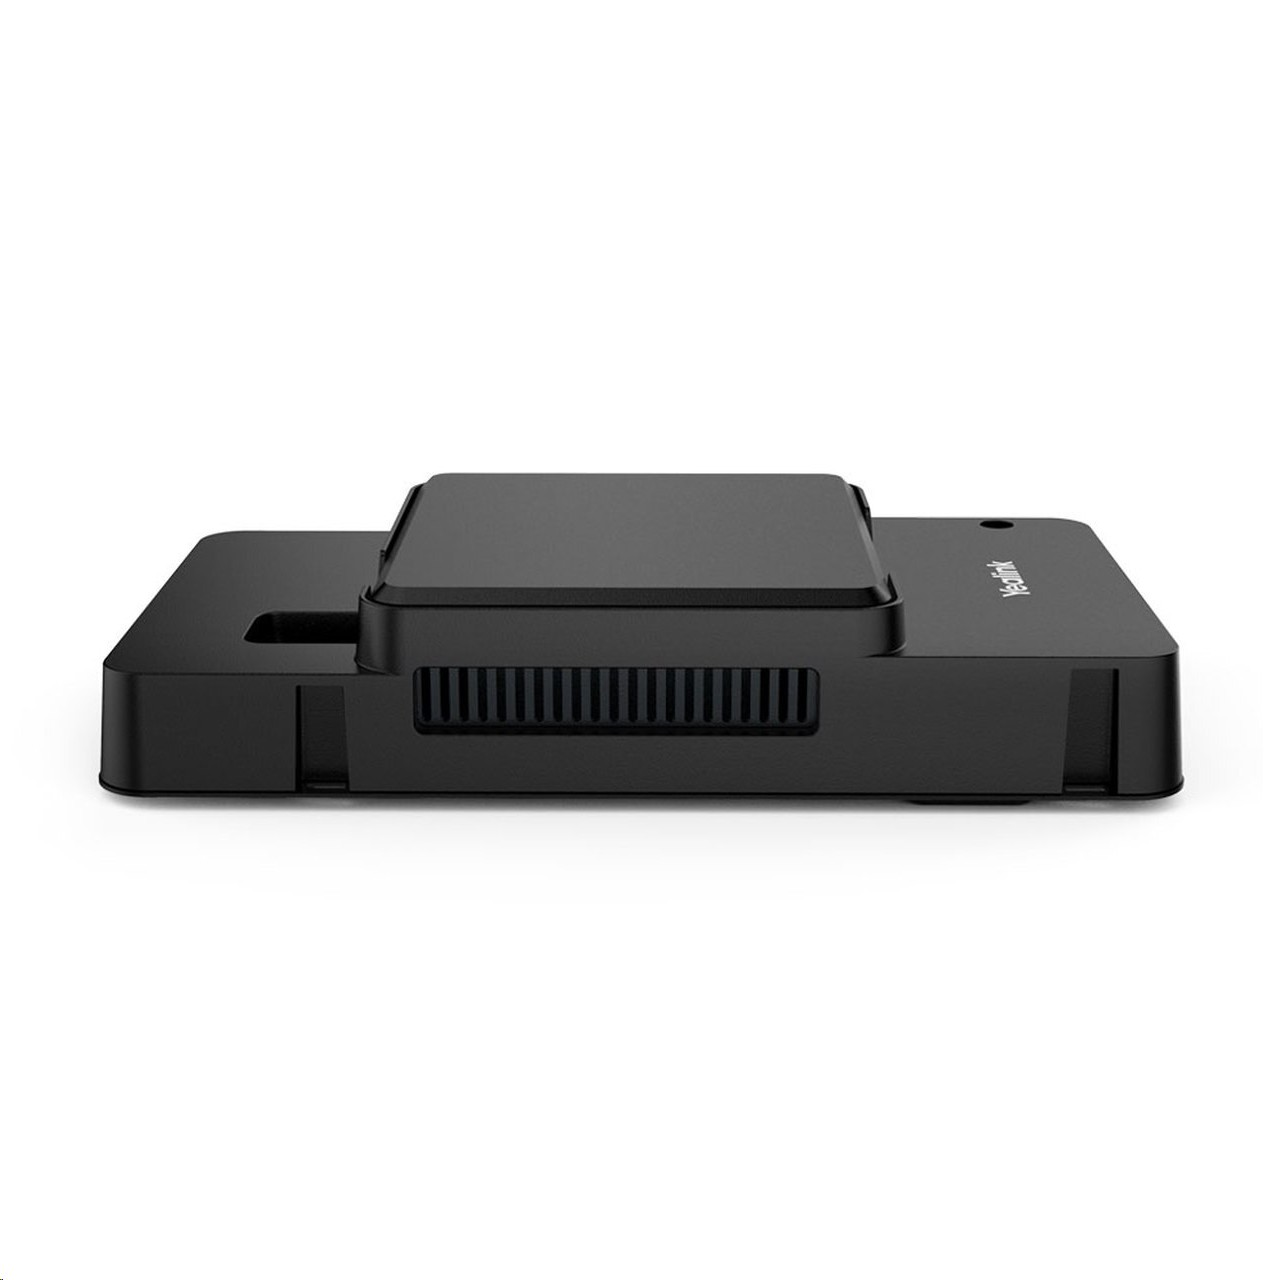 Yealink N7I5-MS Intel Core i5 7th Gen 8GB 128GB Mini PC Package For Conferencing System